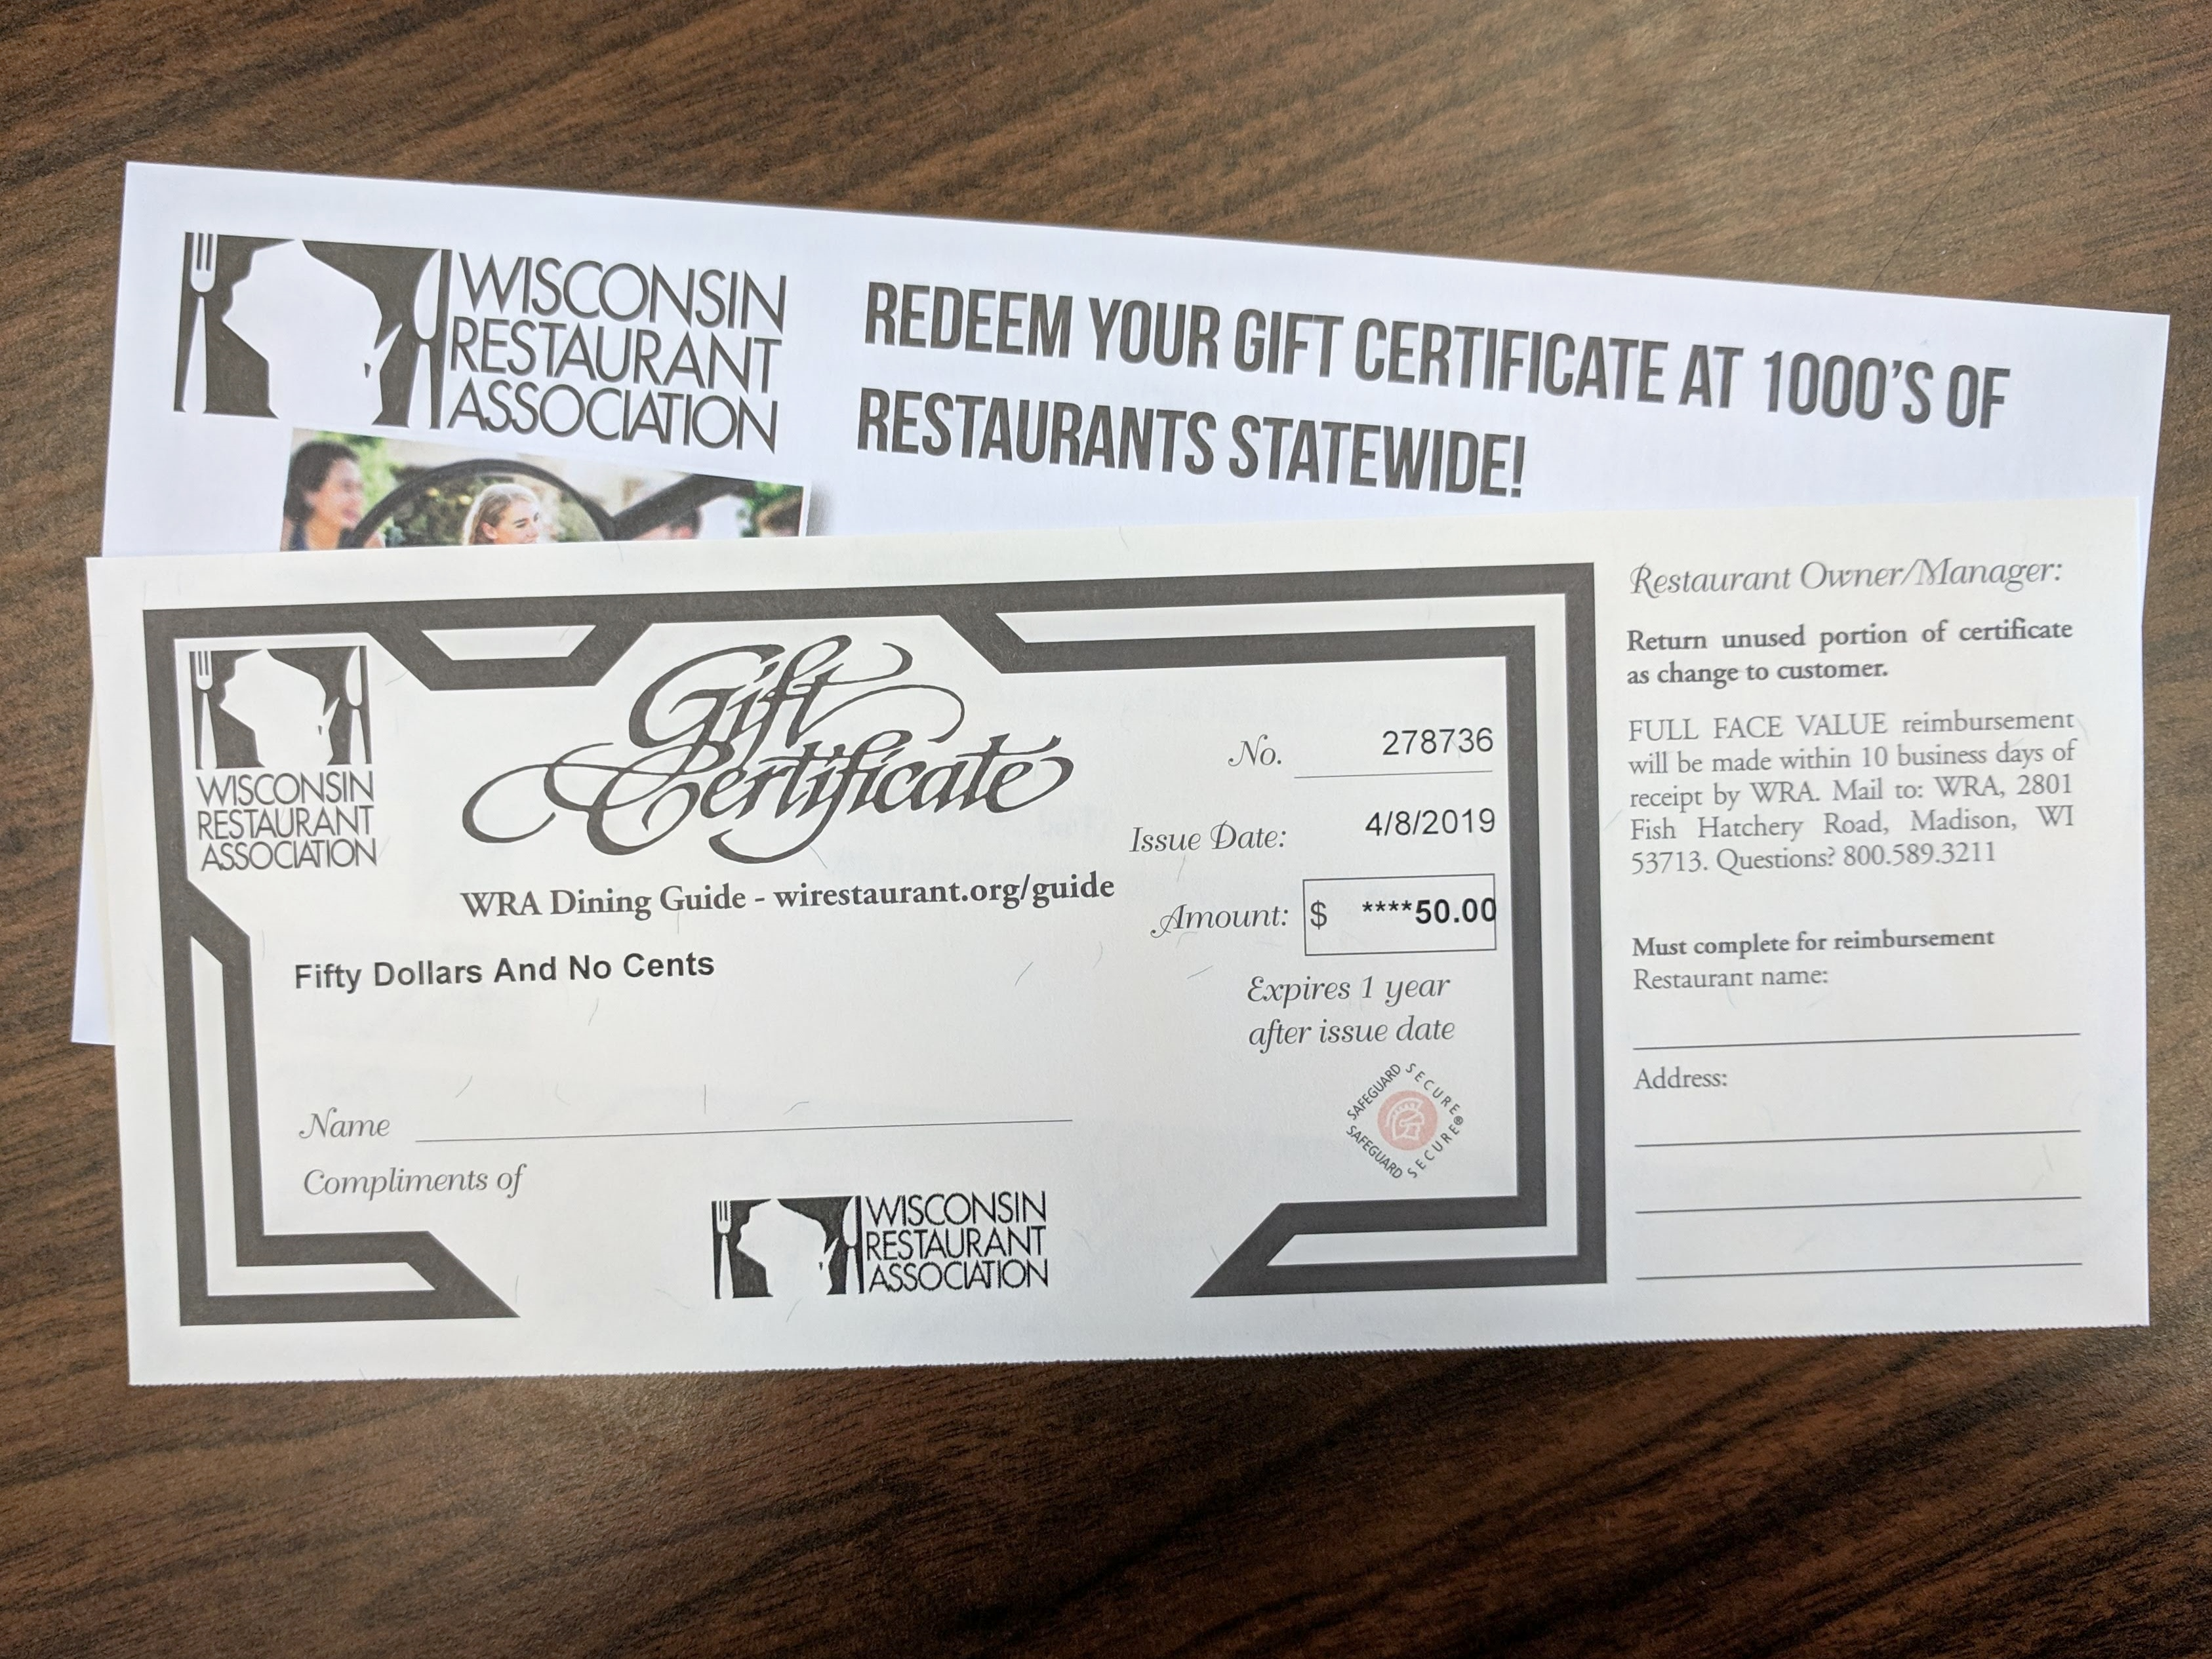 $50 Gift Certificate for Wisconsin Restaurant Association